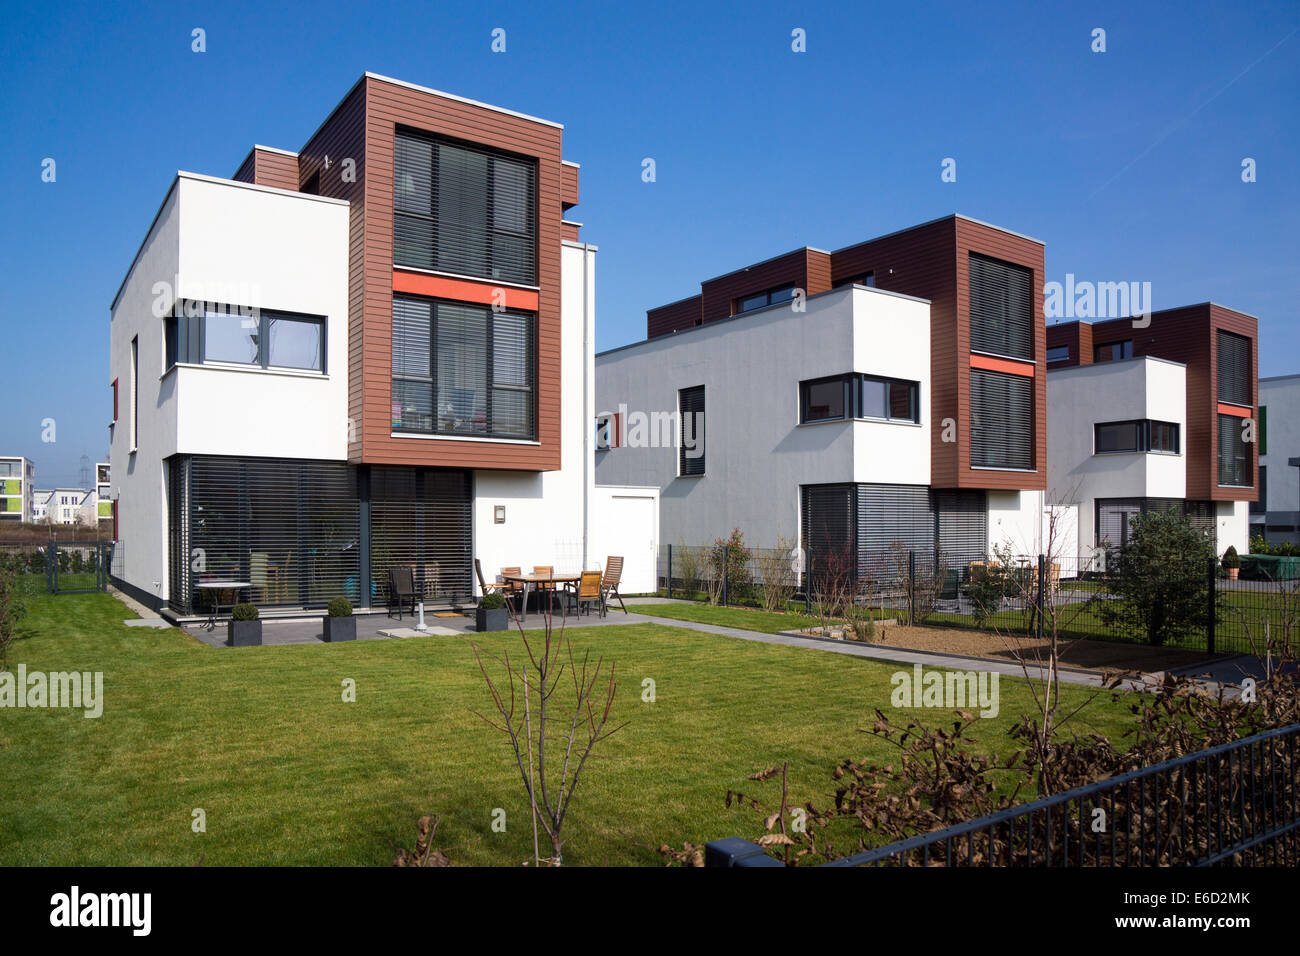 Family house modern architecture in the bauhaus style for Architecture bauhaus